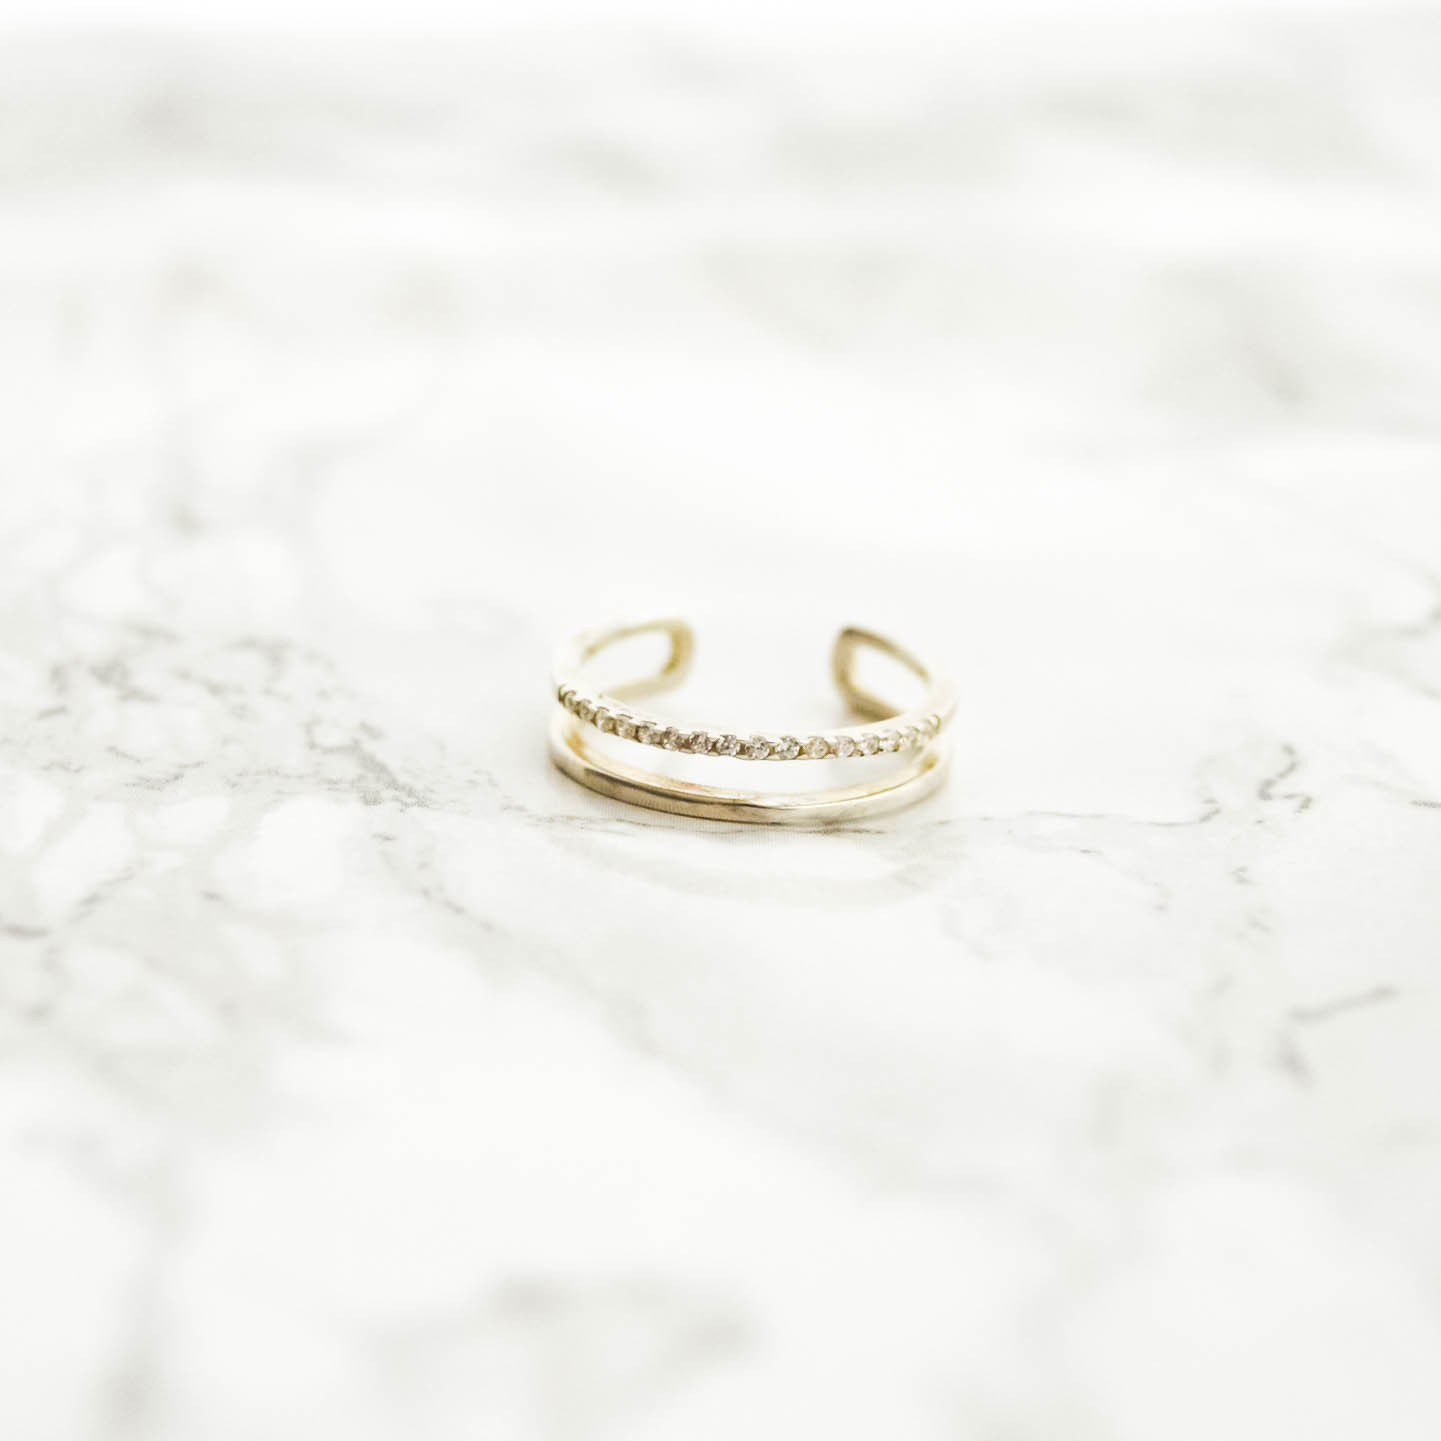 Silver925 Double Line Zirconia Ring